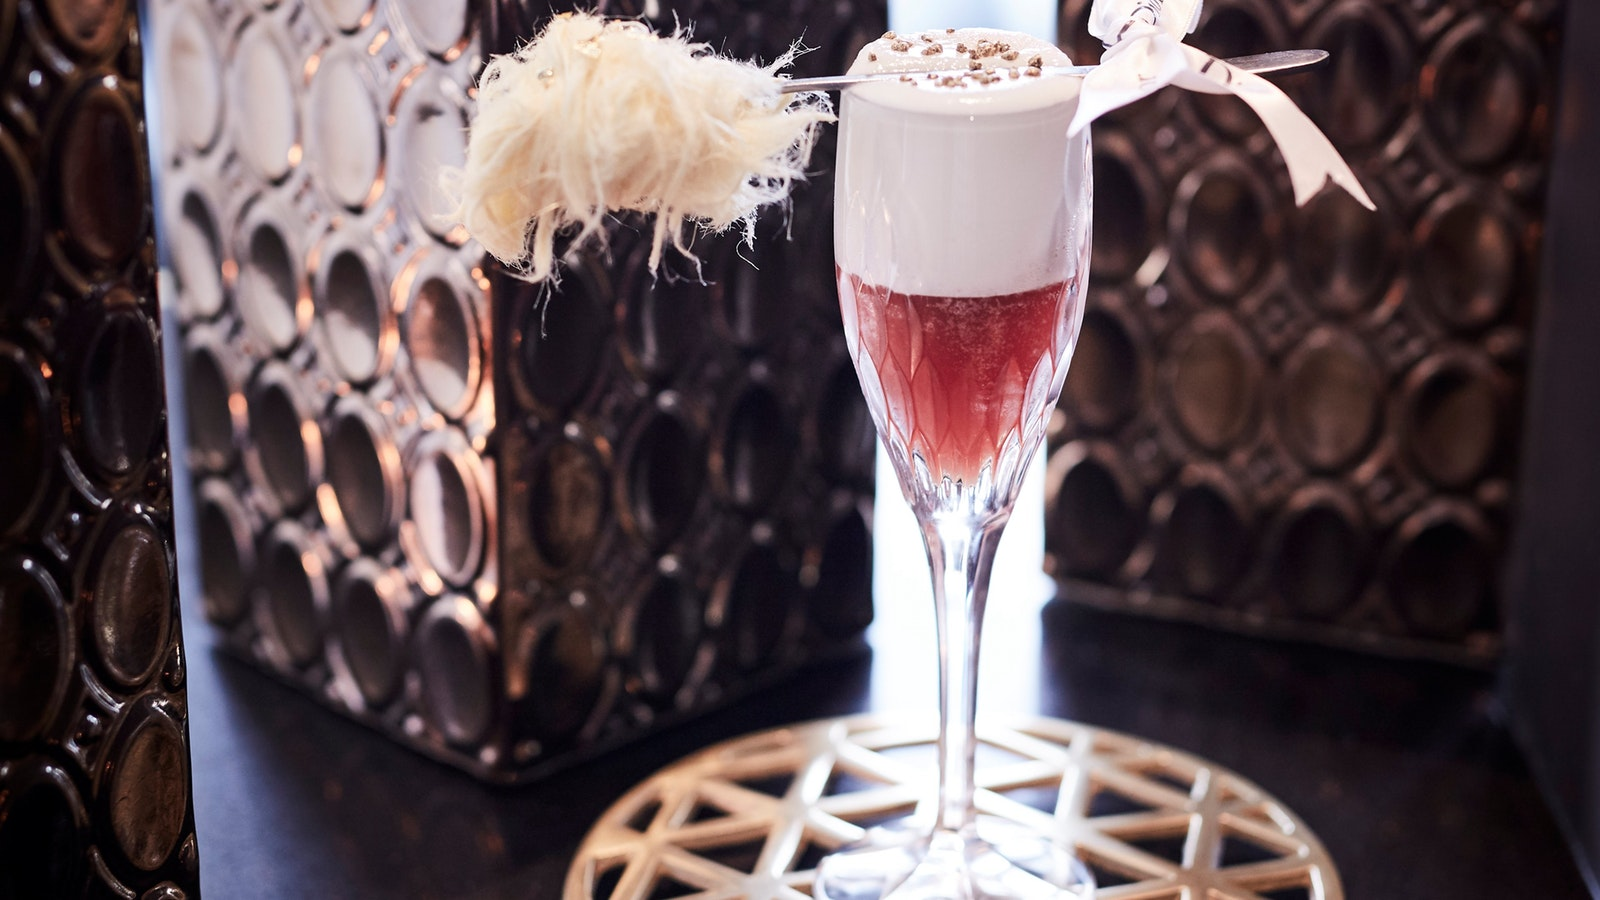 18th Century - Dior Inspired Cocktails at Atrium Bar